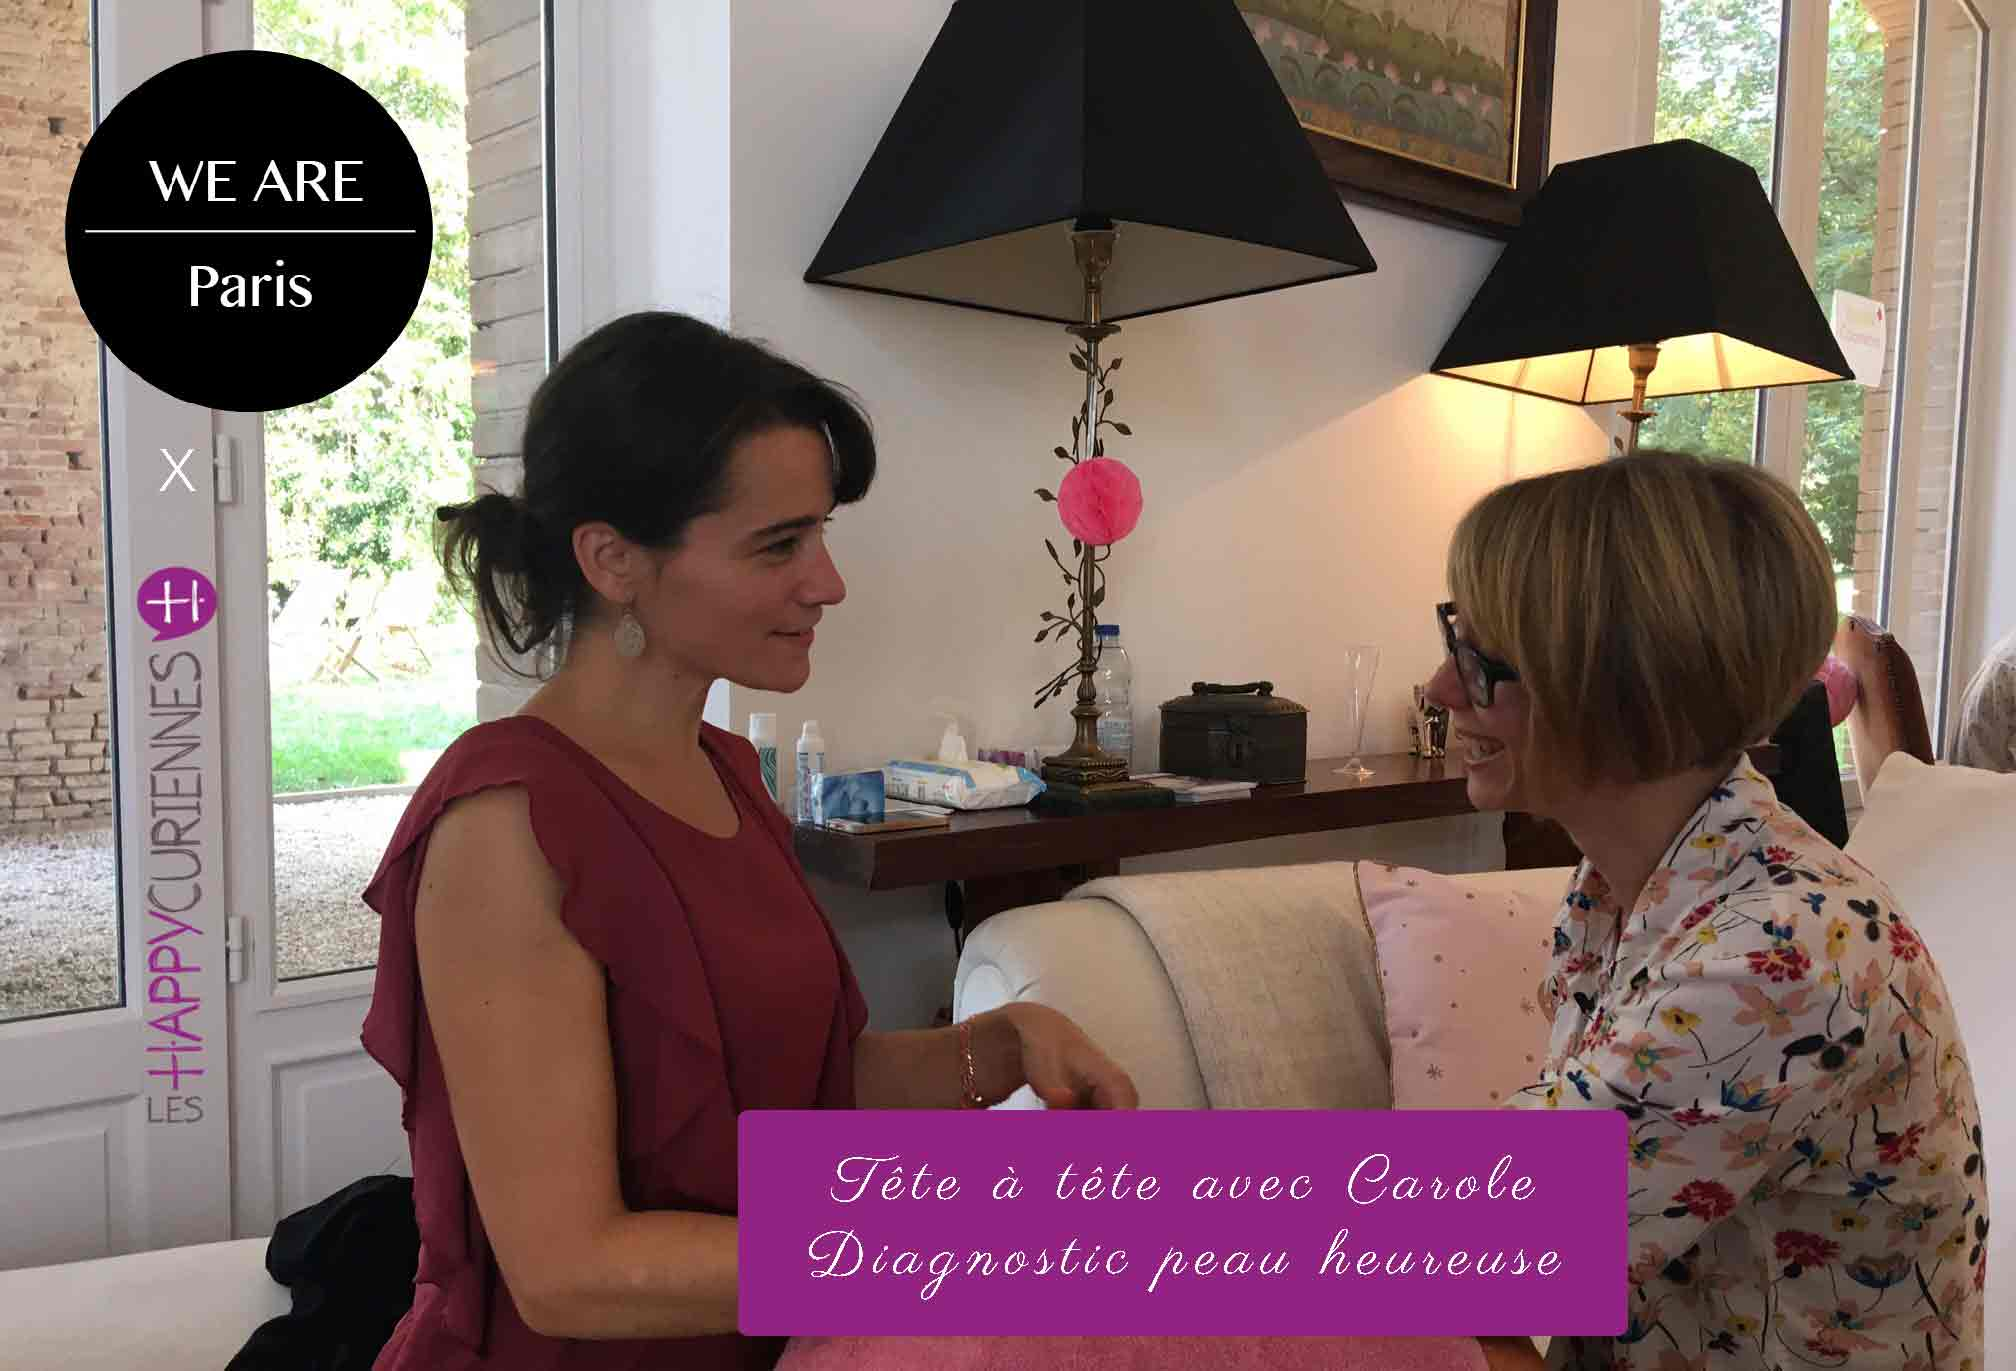 Escale Happycurienne au concept sotire We are paris pour un tête à tête avec Carole M.